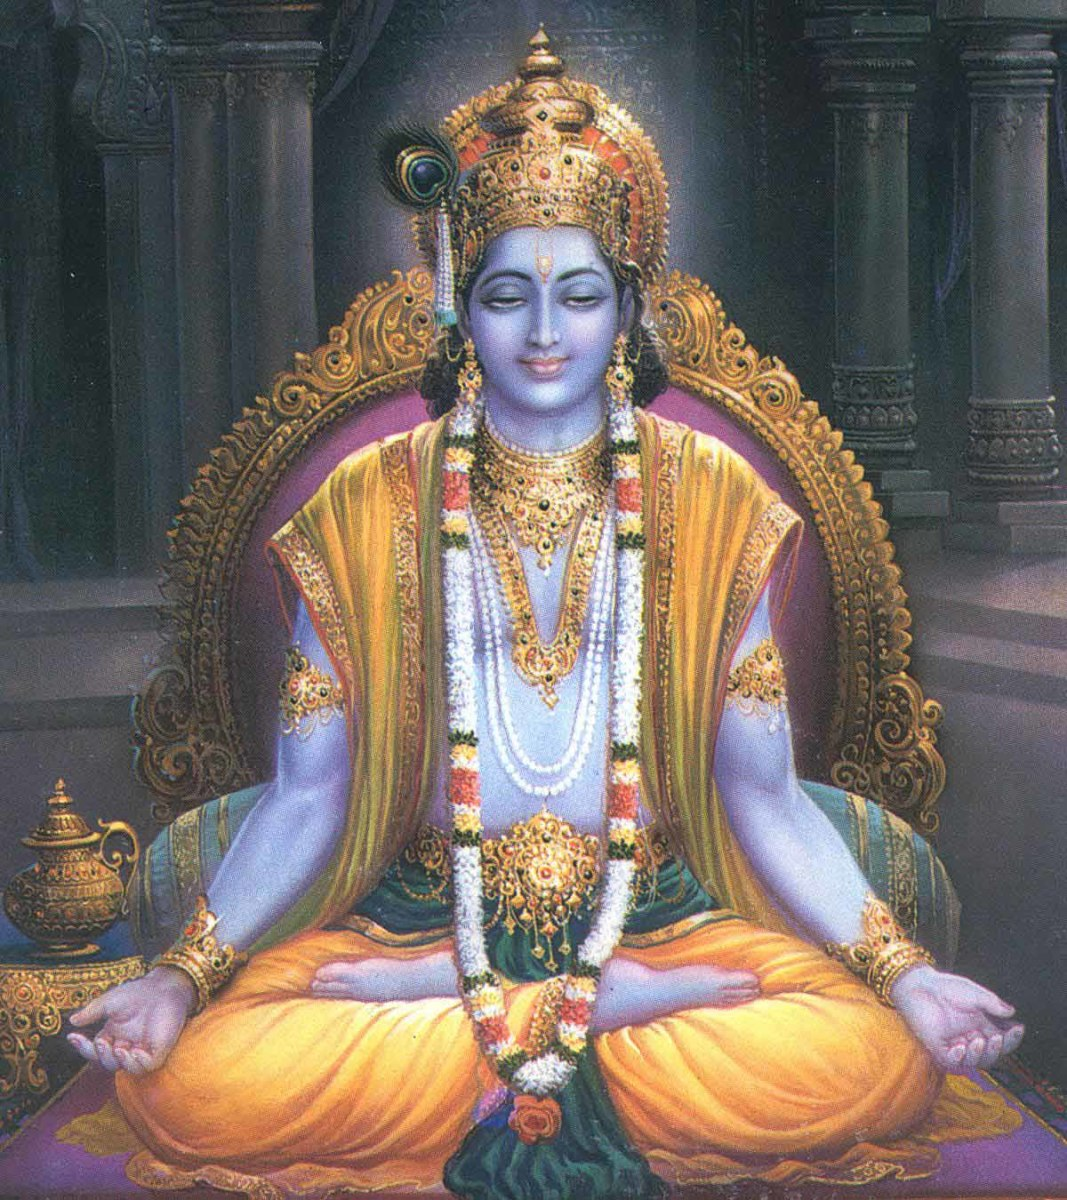 The object of meditation of millions, Lord Krishna meditates on one who gives Him selfless love!